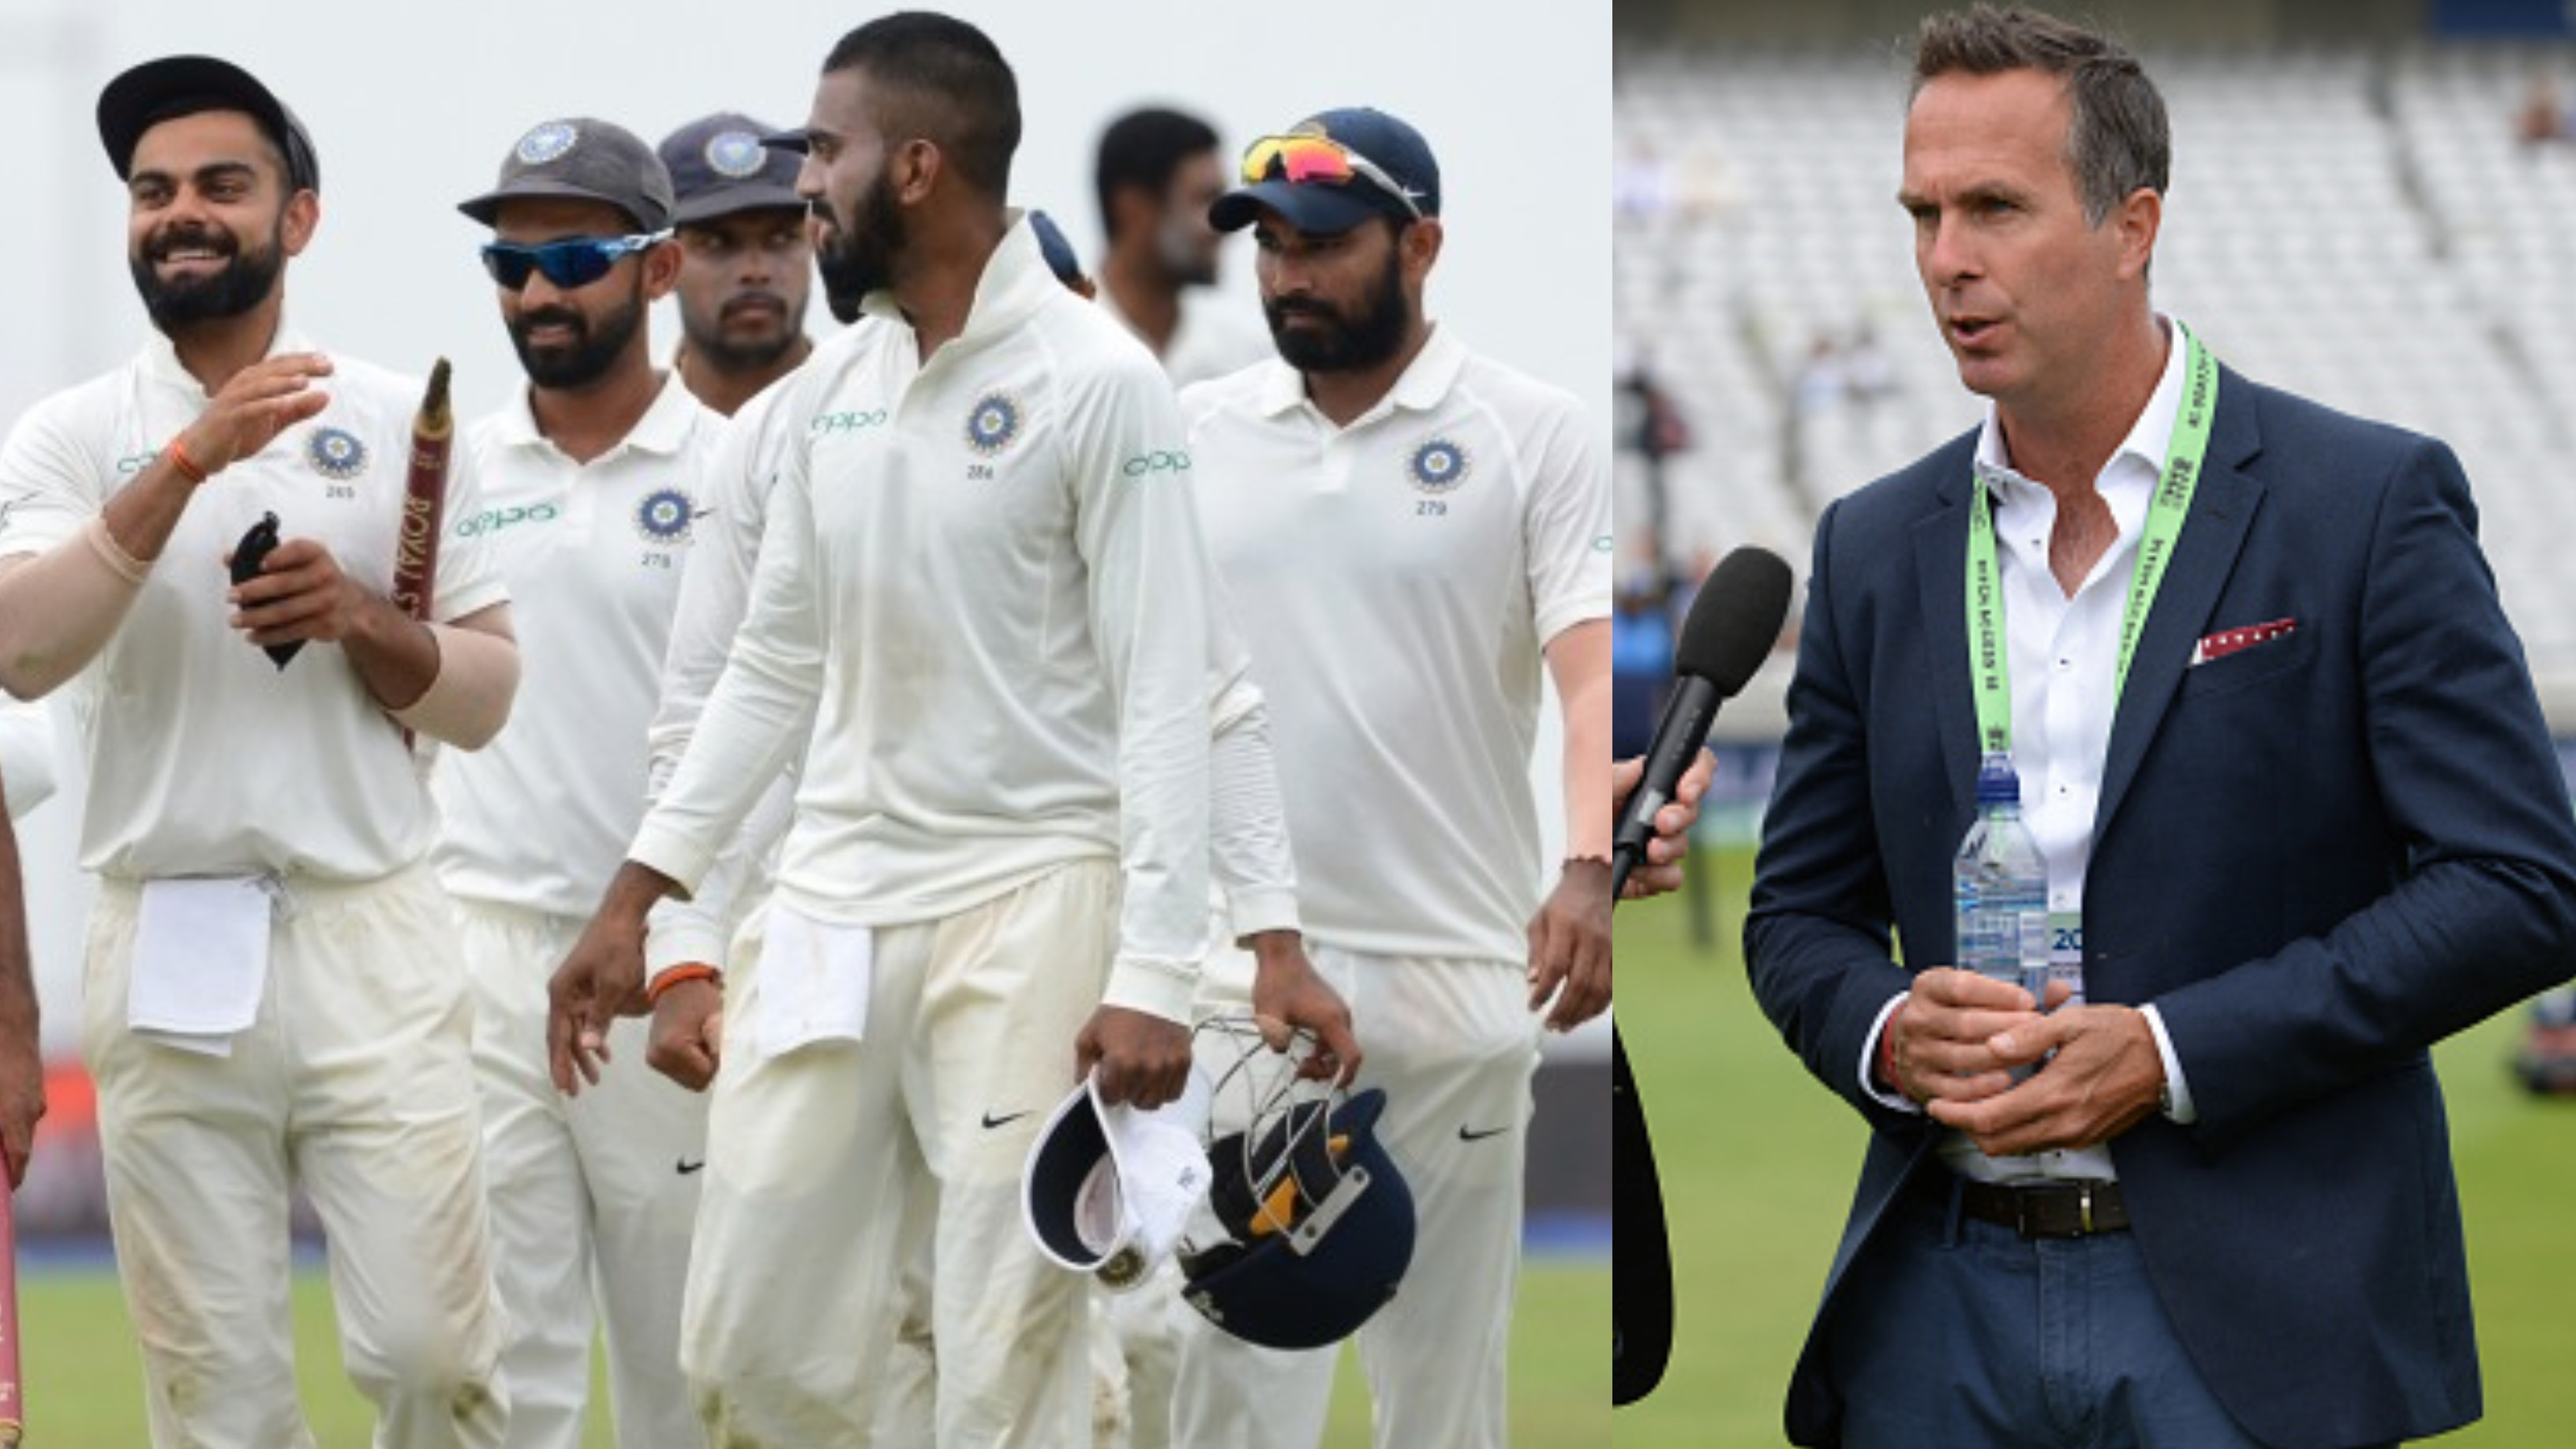 AUS v IND 2018-19: Best chance for India to win series Down Under, feels Michael Vaughan